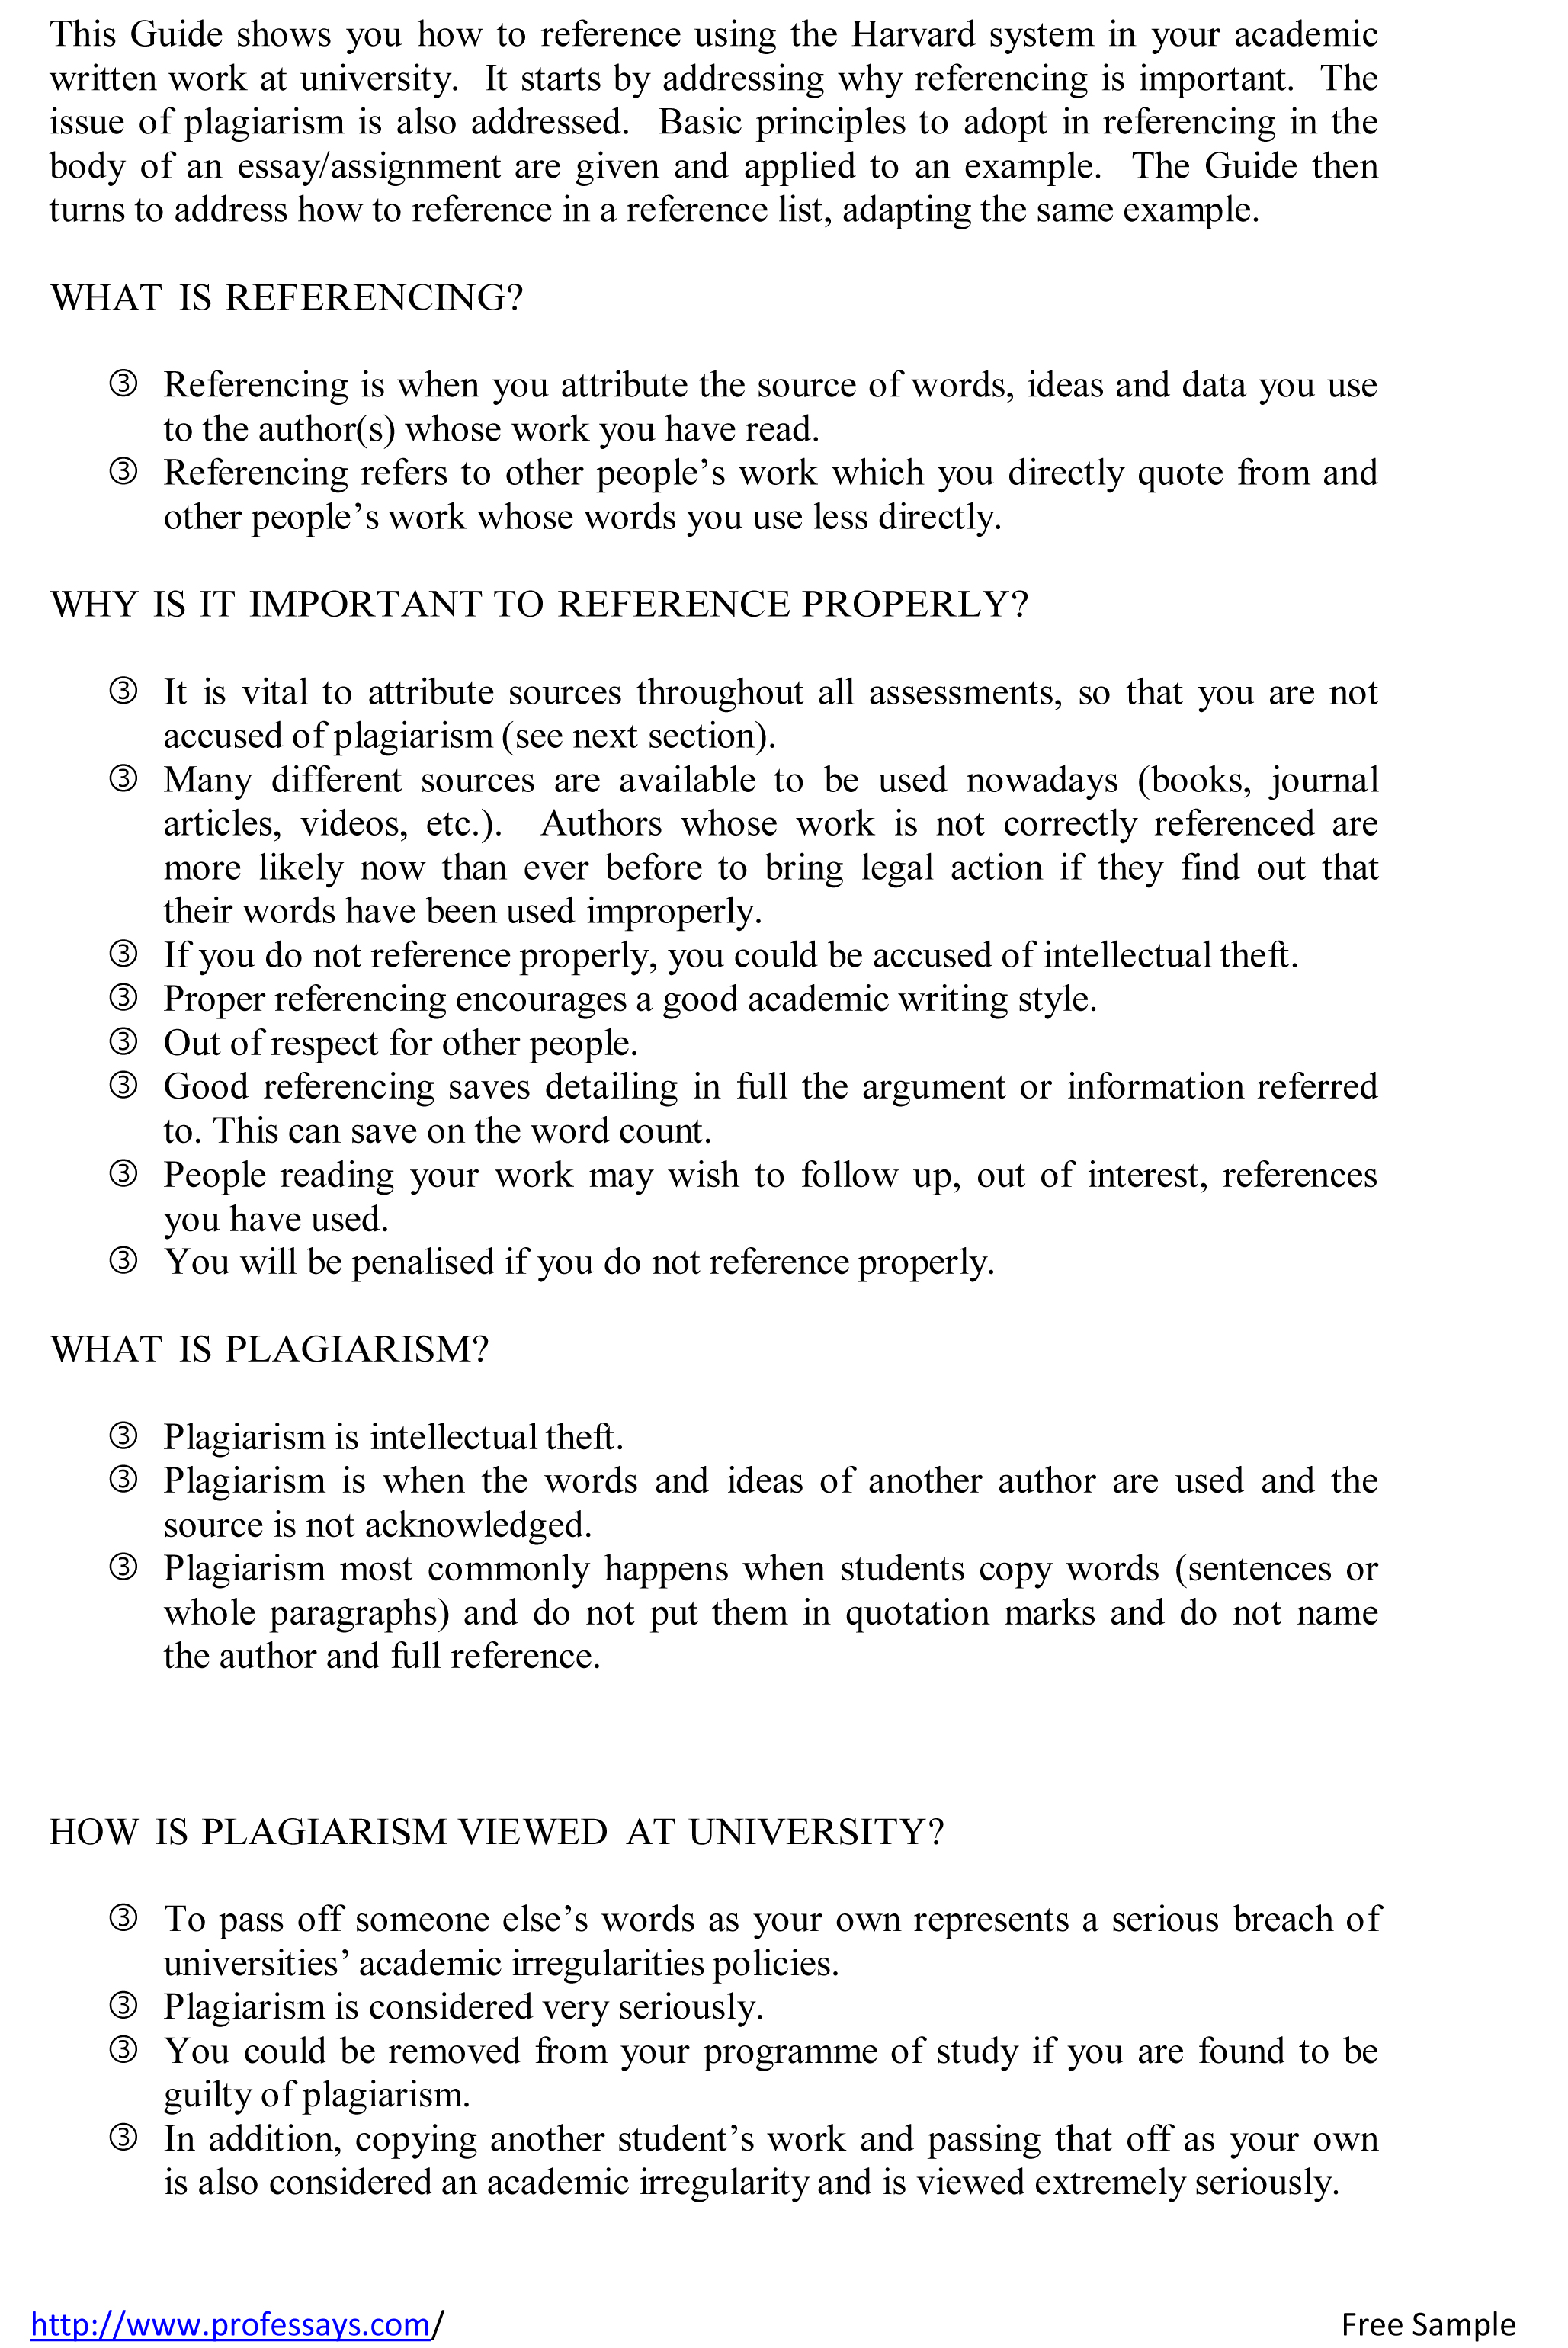 007 Essay Example References Writing Help Academic Essays Fearsome Online Read Buy Full